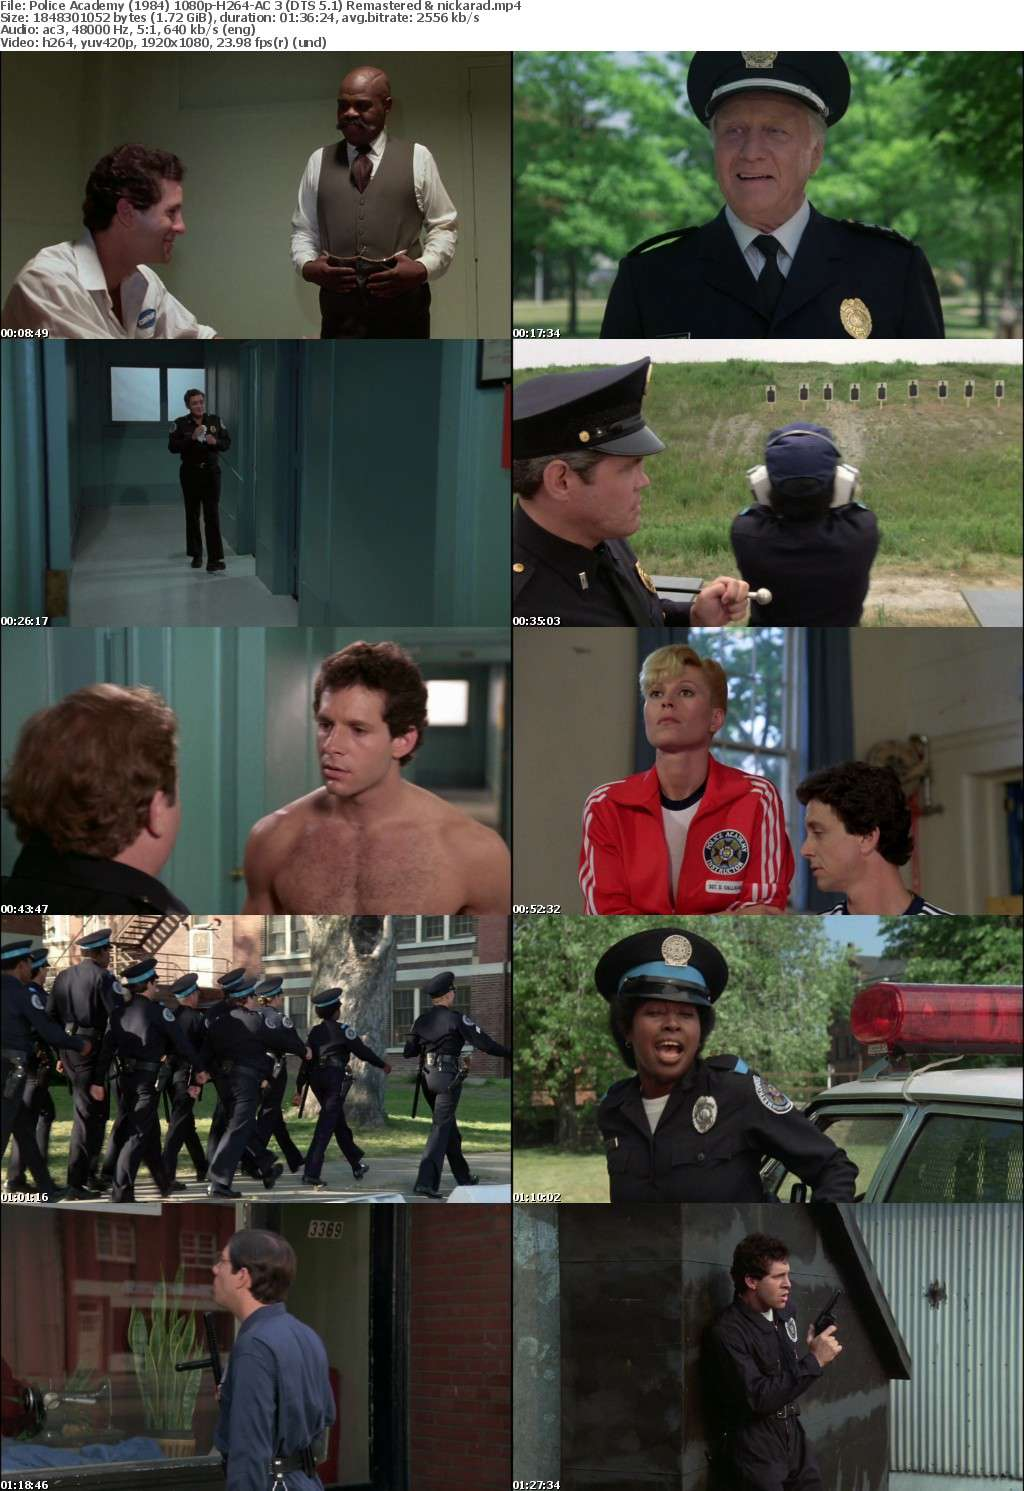 Police Academy (1984) 1080p BluRay H264 AC 3 Remastered-nickarad